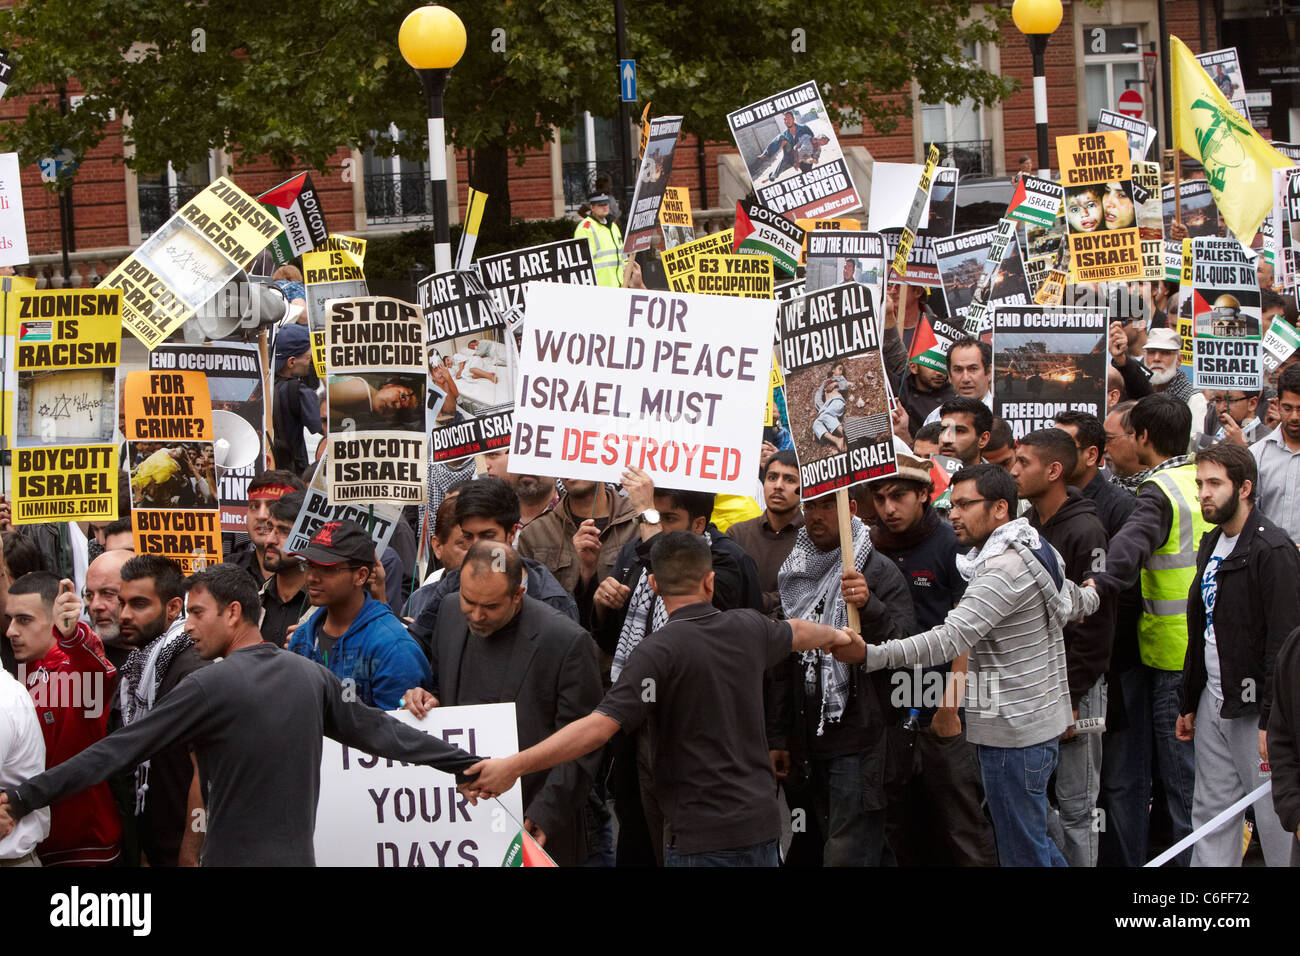 The 2011 Al Quds Day march, calling for a boycott of Israeli products and a free Palestine, takes place in London. - Stock Image